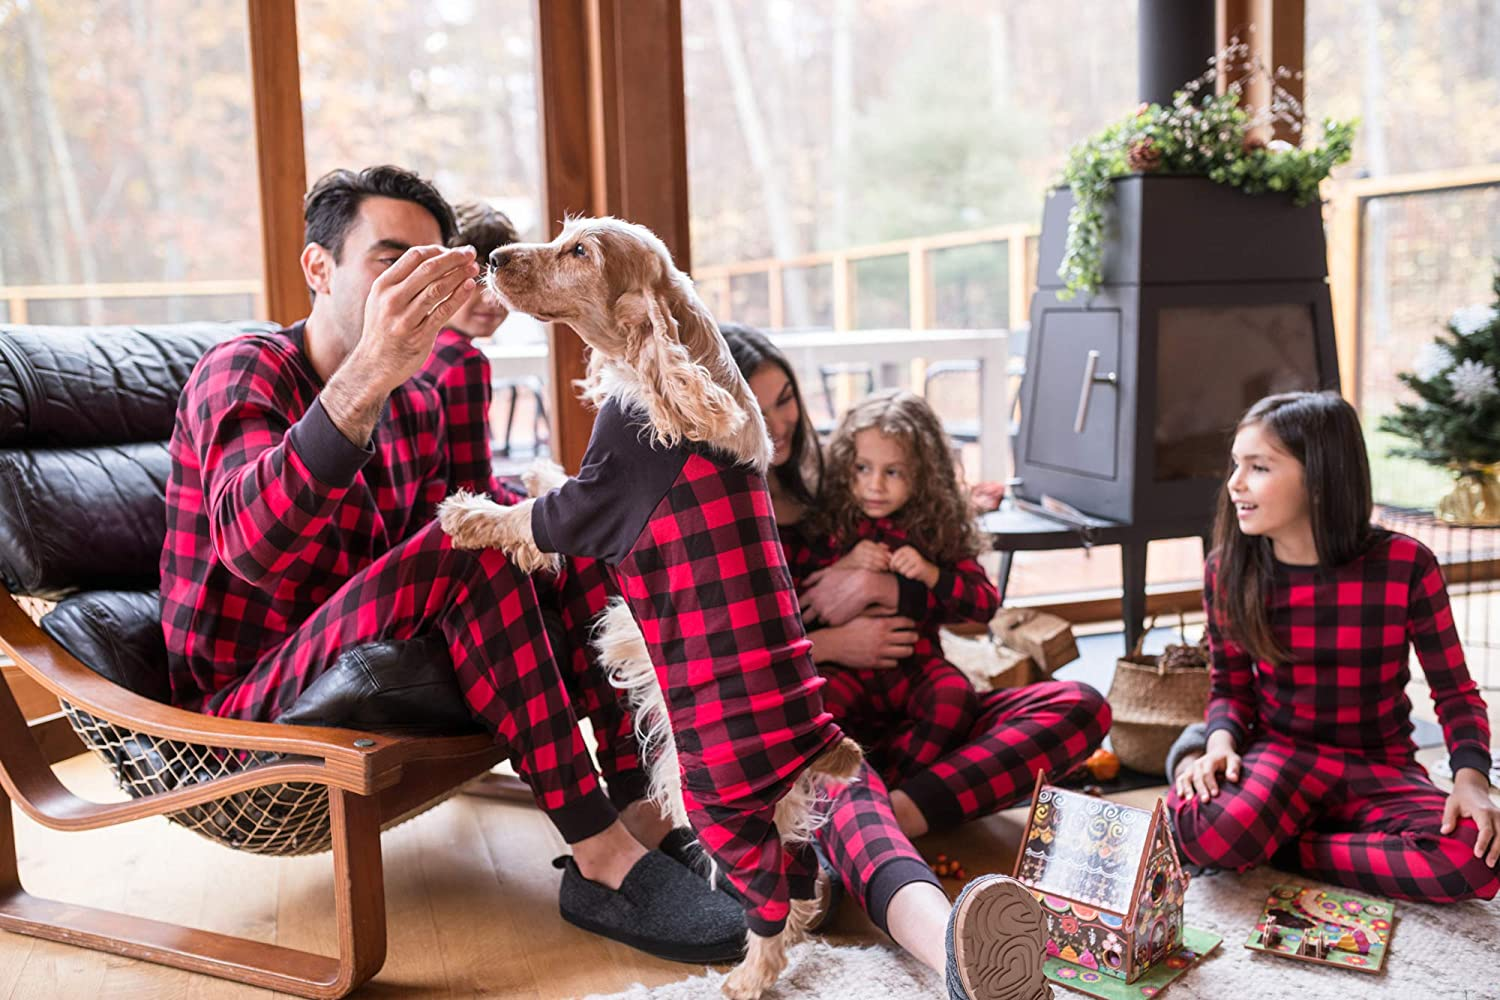 Leveret-Dog-Pajamas-Matching-Christmas-Pjs-for-Dogs-100-Cotton. Cutest 10 Pajamas for Dogs on Amazon in 2021/2022